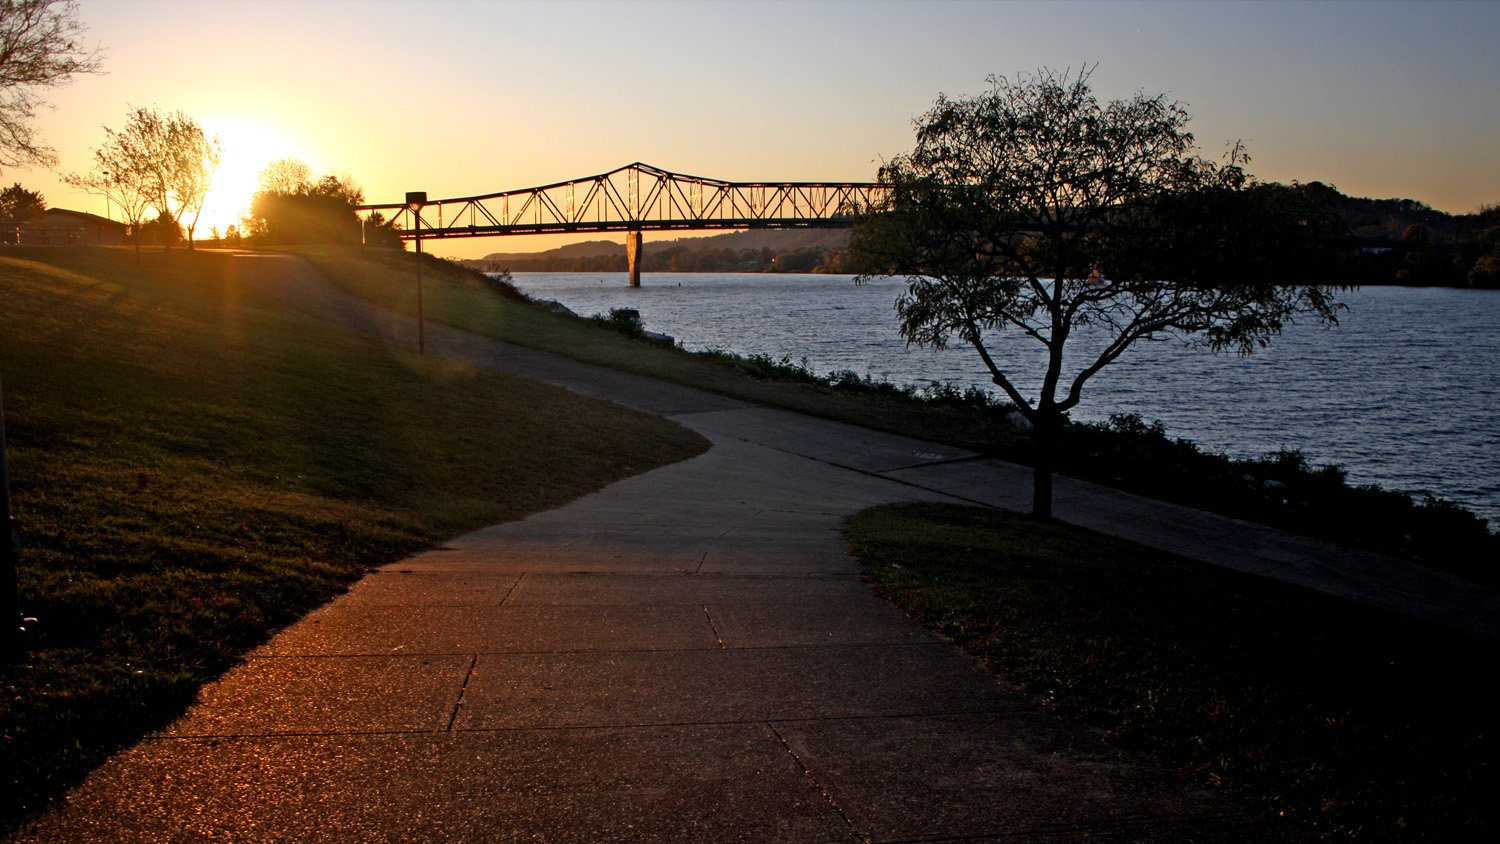 The Robert C. Byrd Bridge